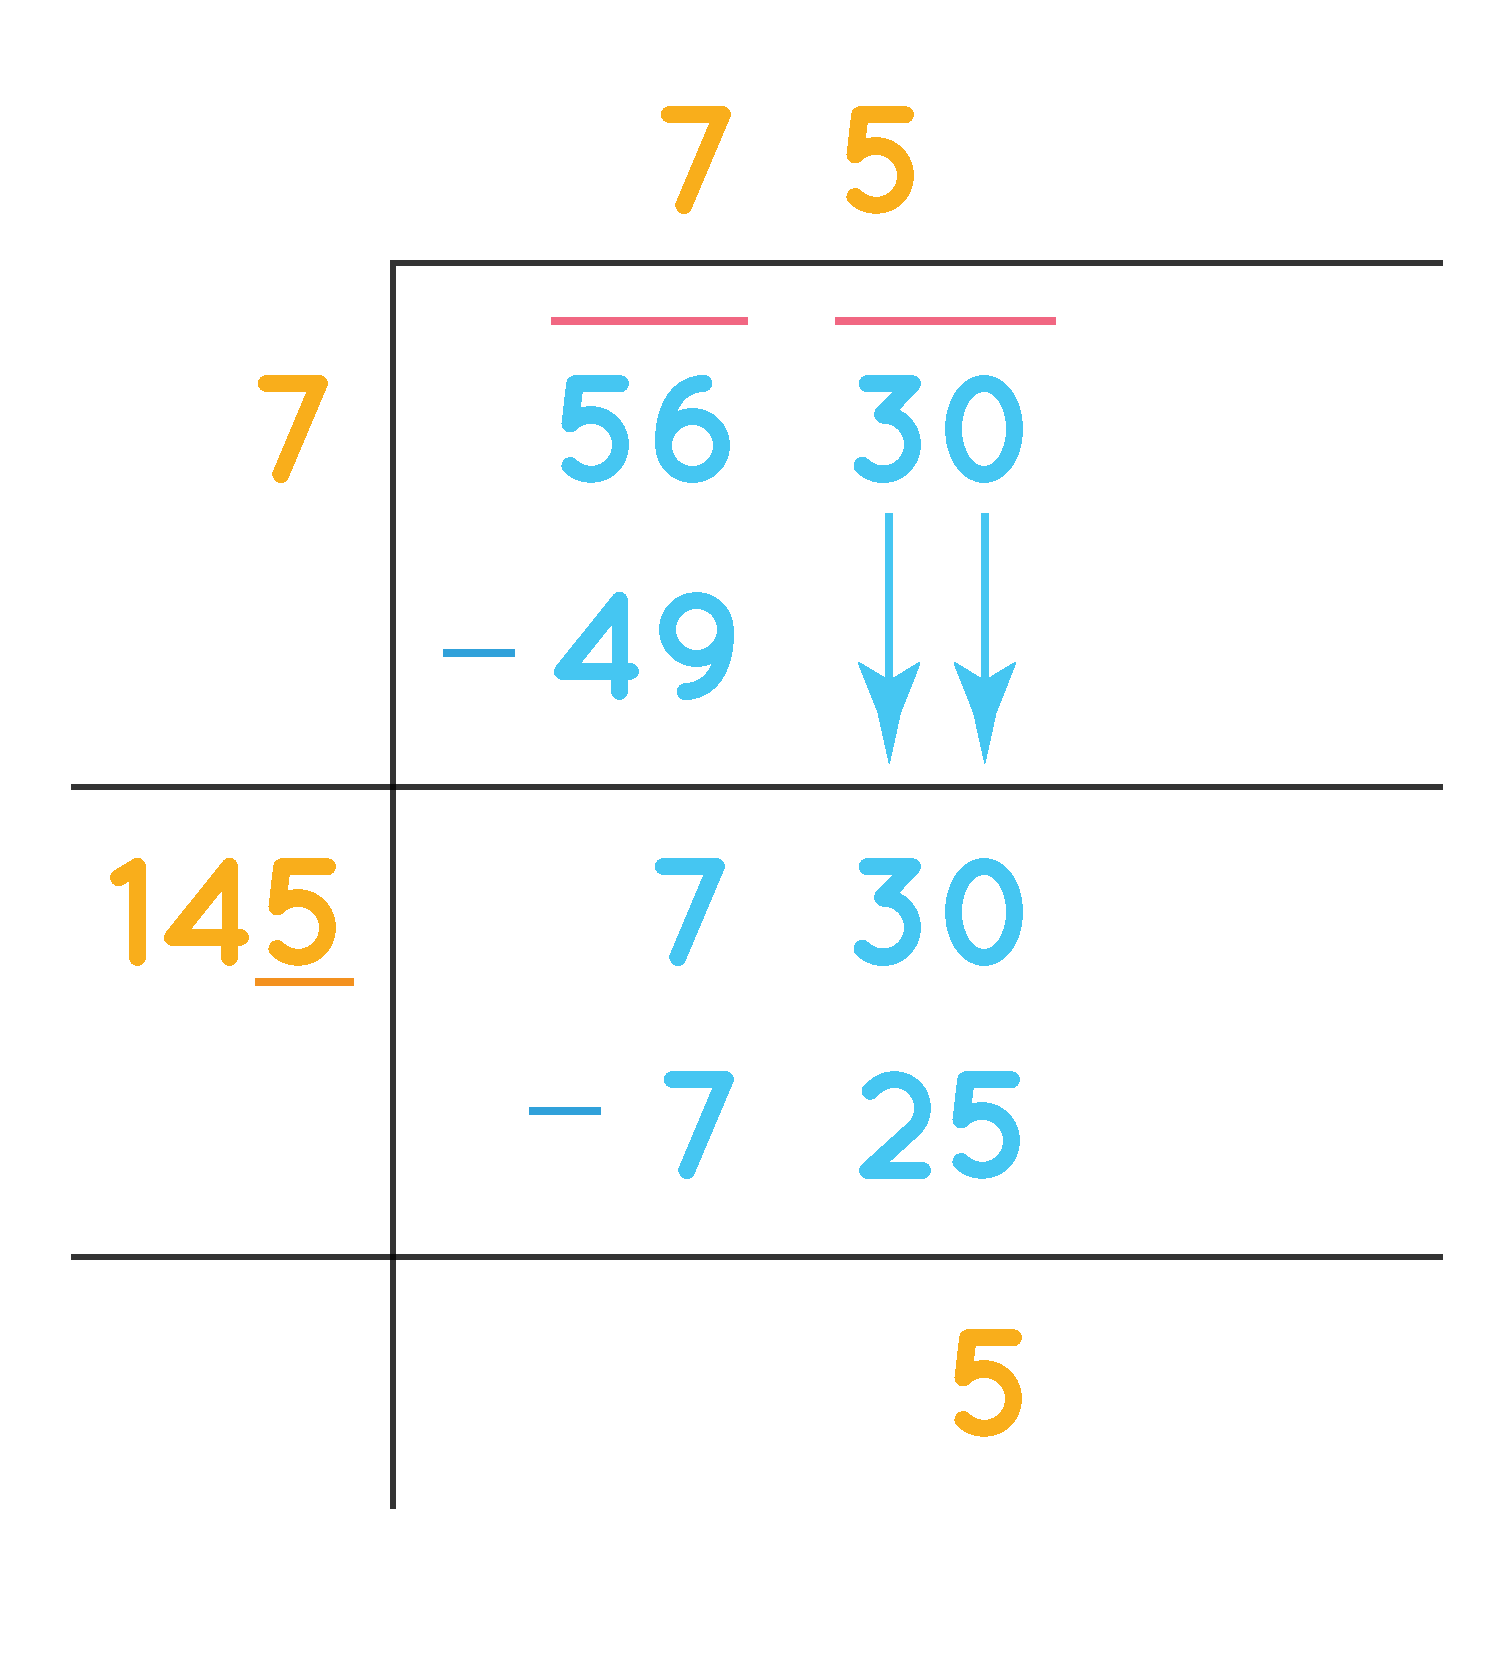 square root of 5630 by division method